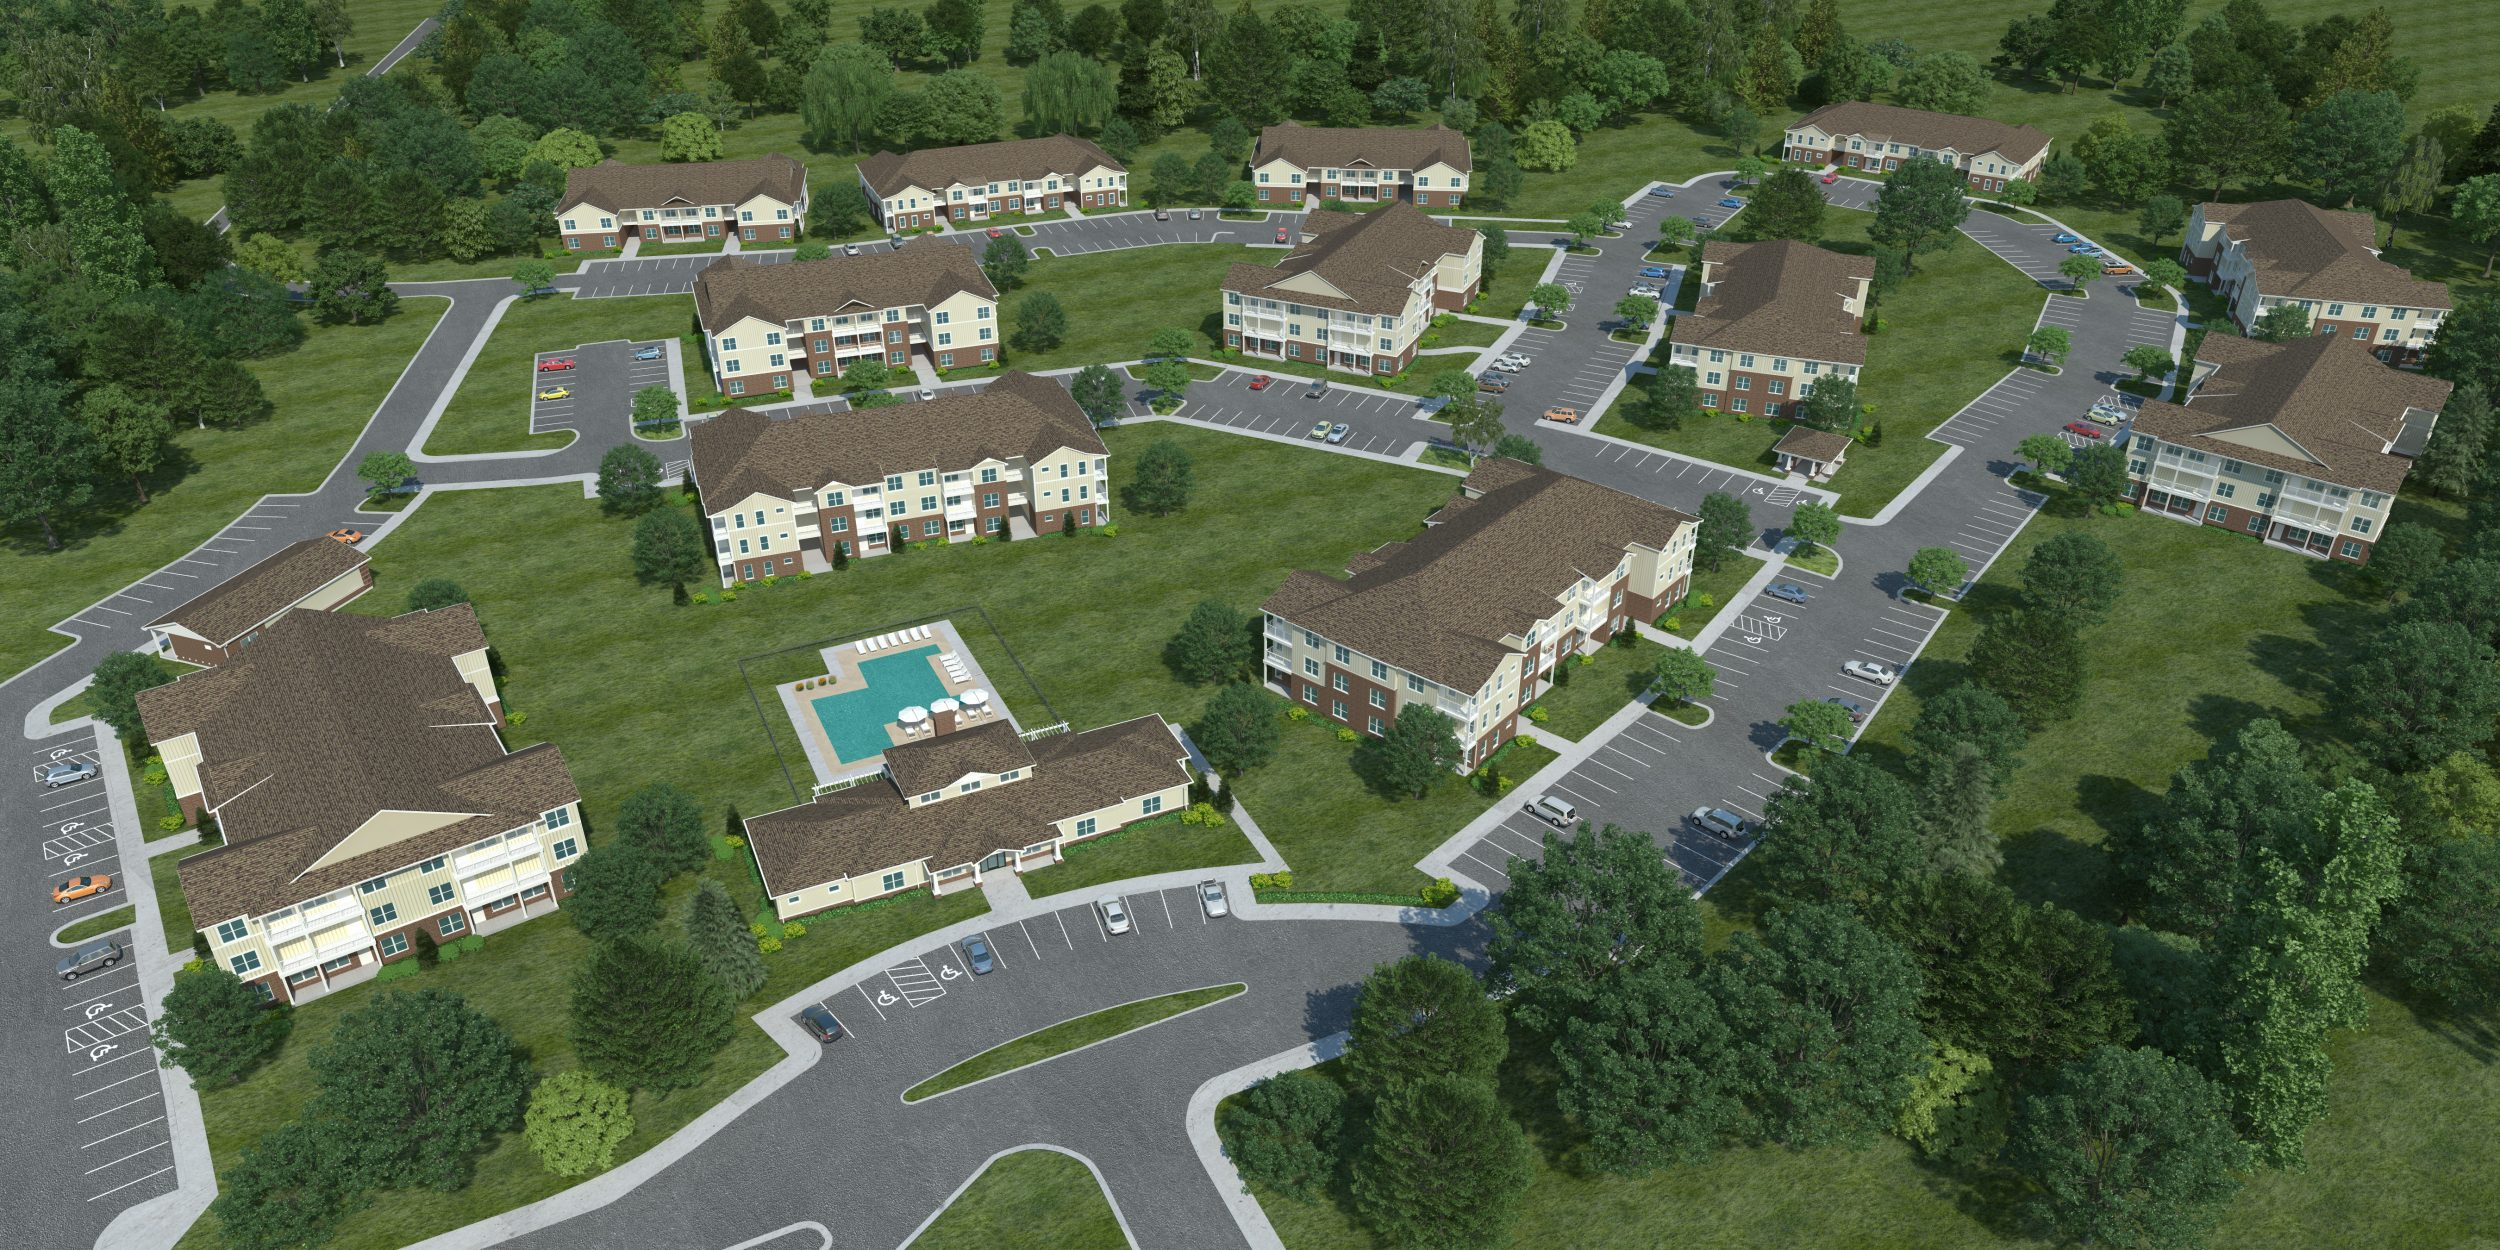 Project Image of Gardens at Harvest Point – Affordable Multifamily Apartments